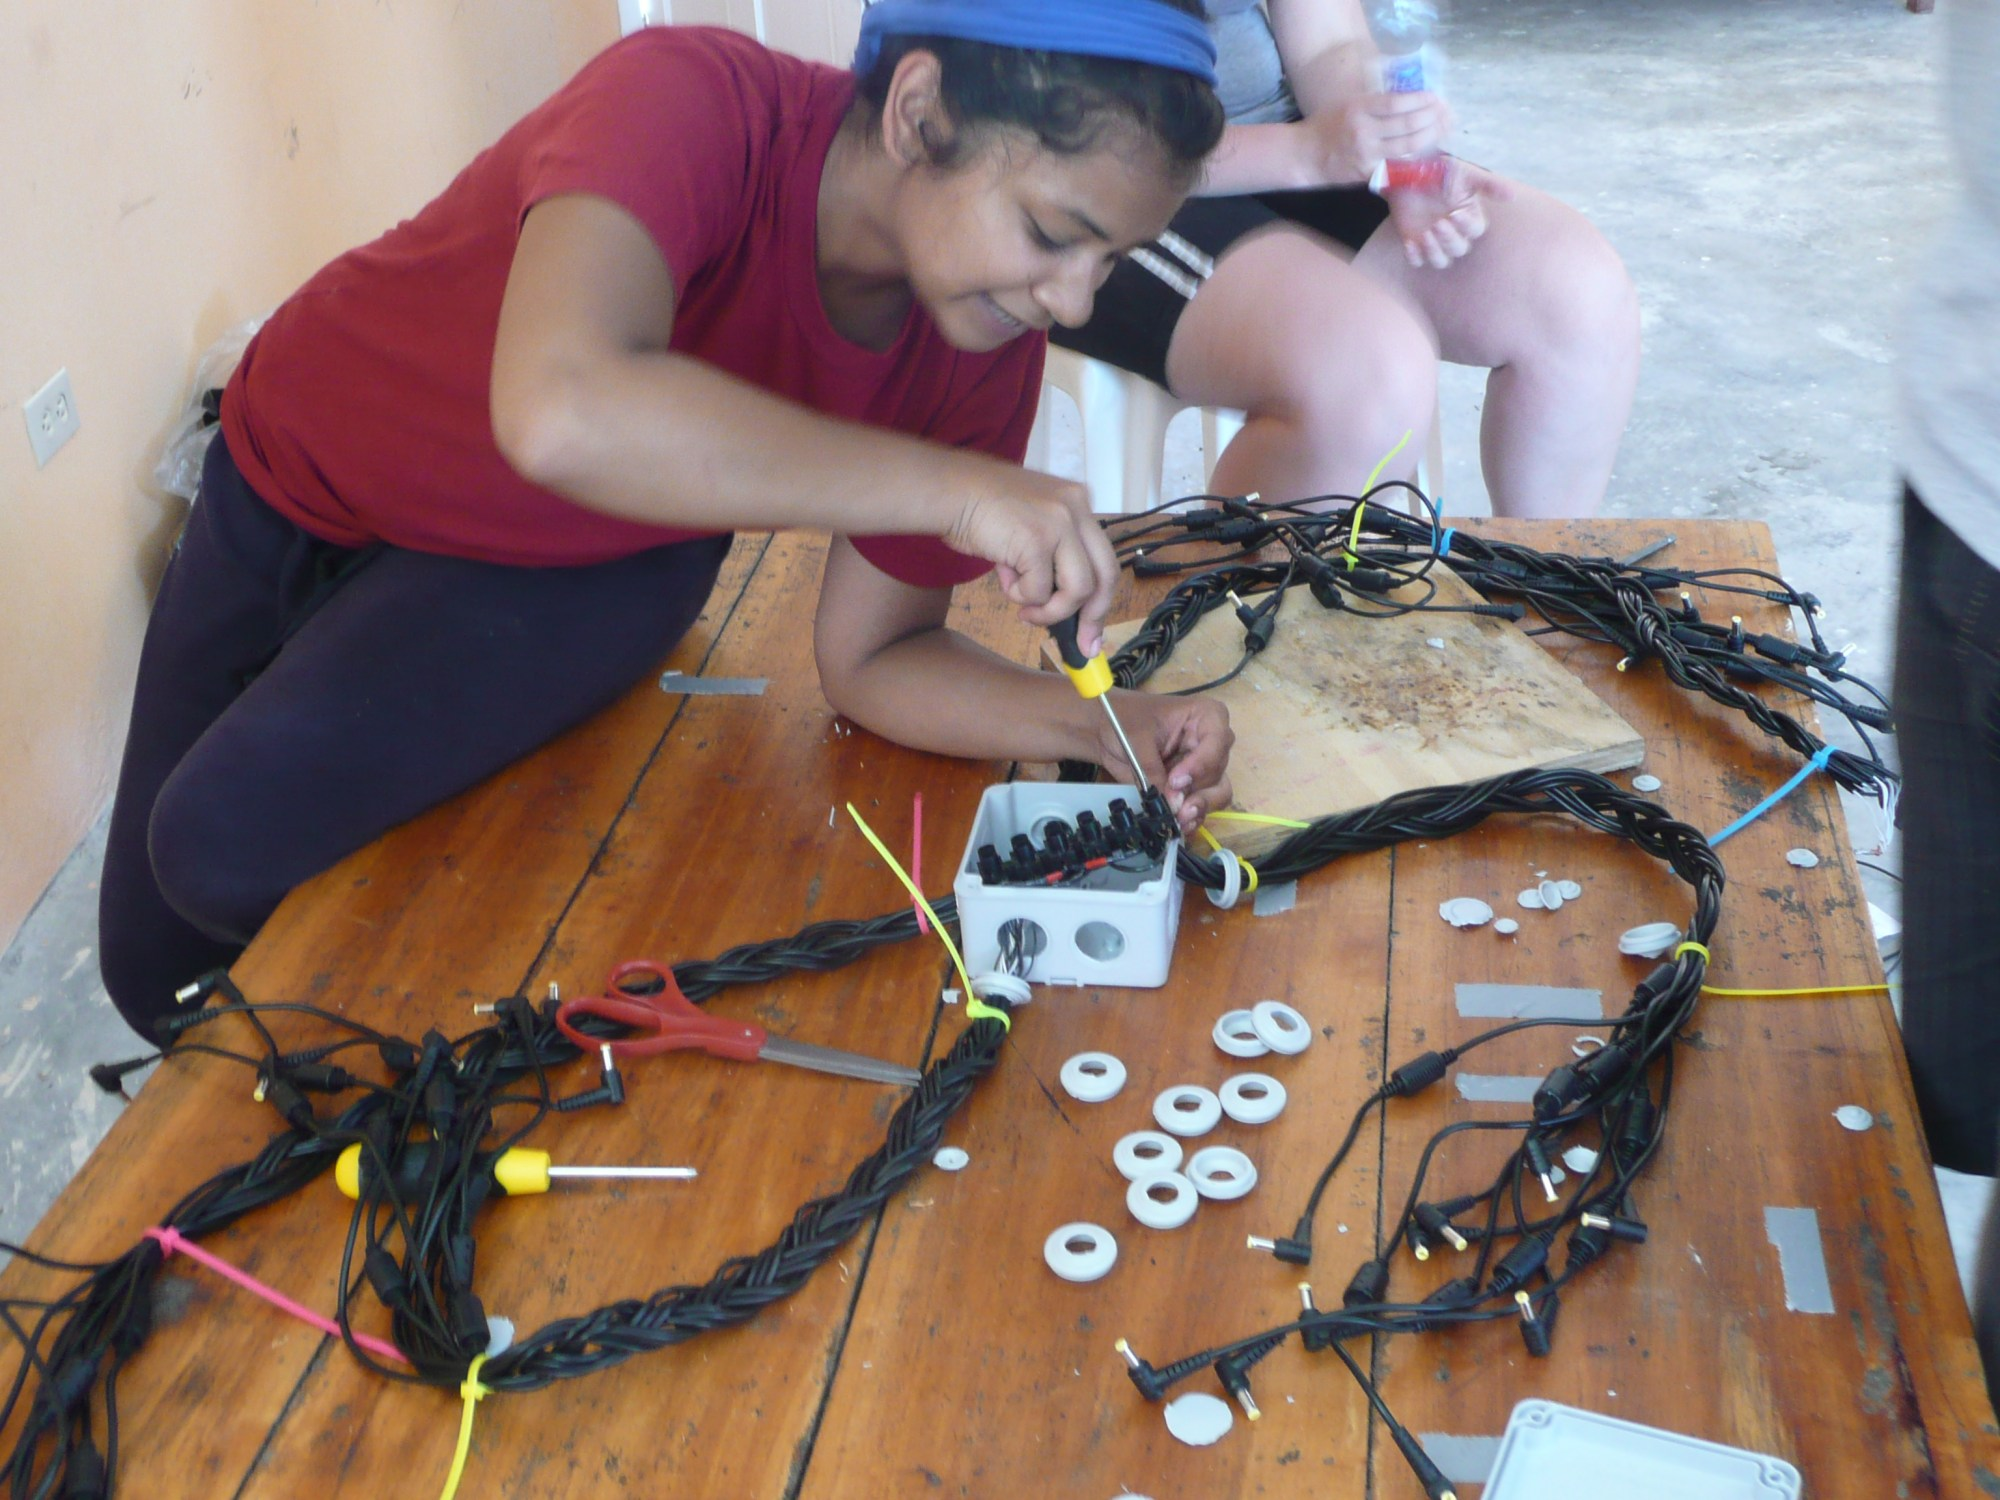 hight resolution of shah had been to haiti three times before to conduct site assessments but wiring the school for charging laptops was her first engineering project there